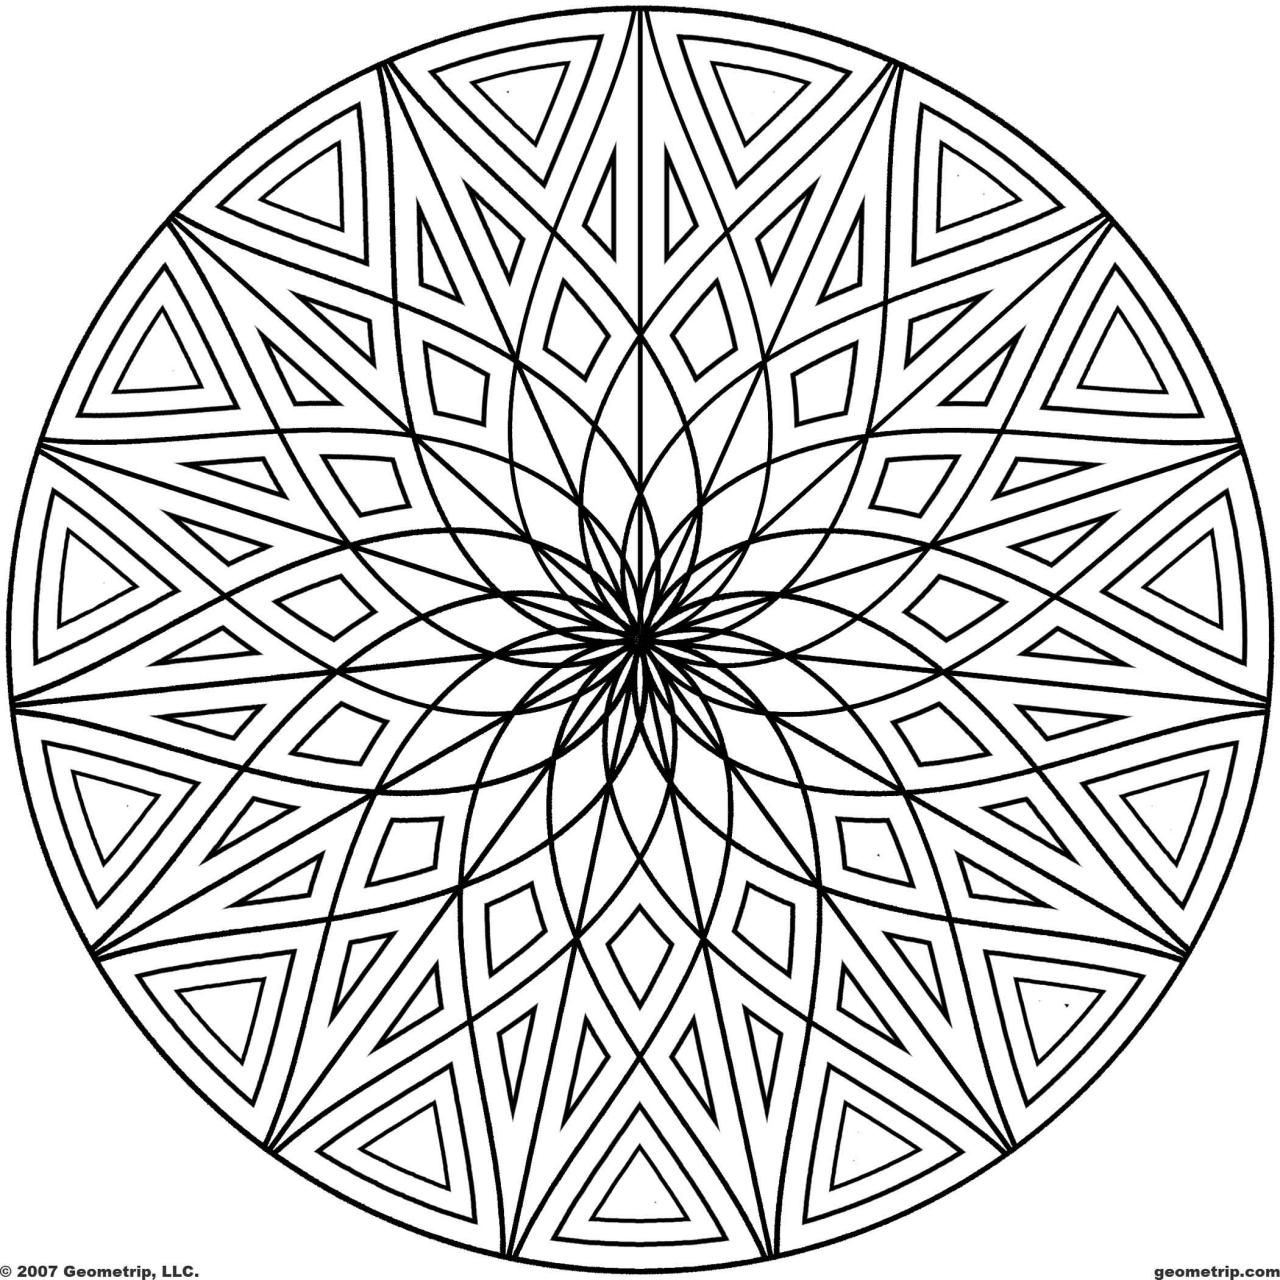 Coloring Pages Of Cool Designs - Coloring Home